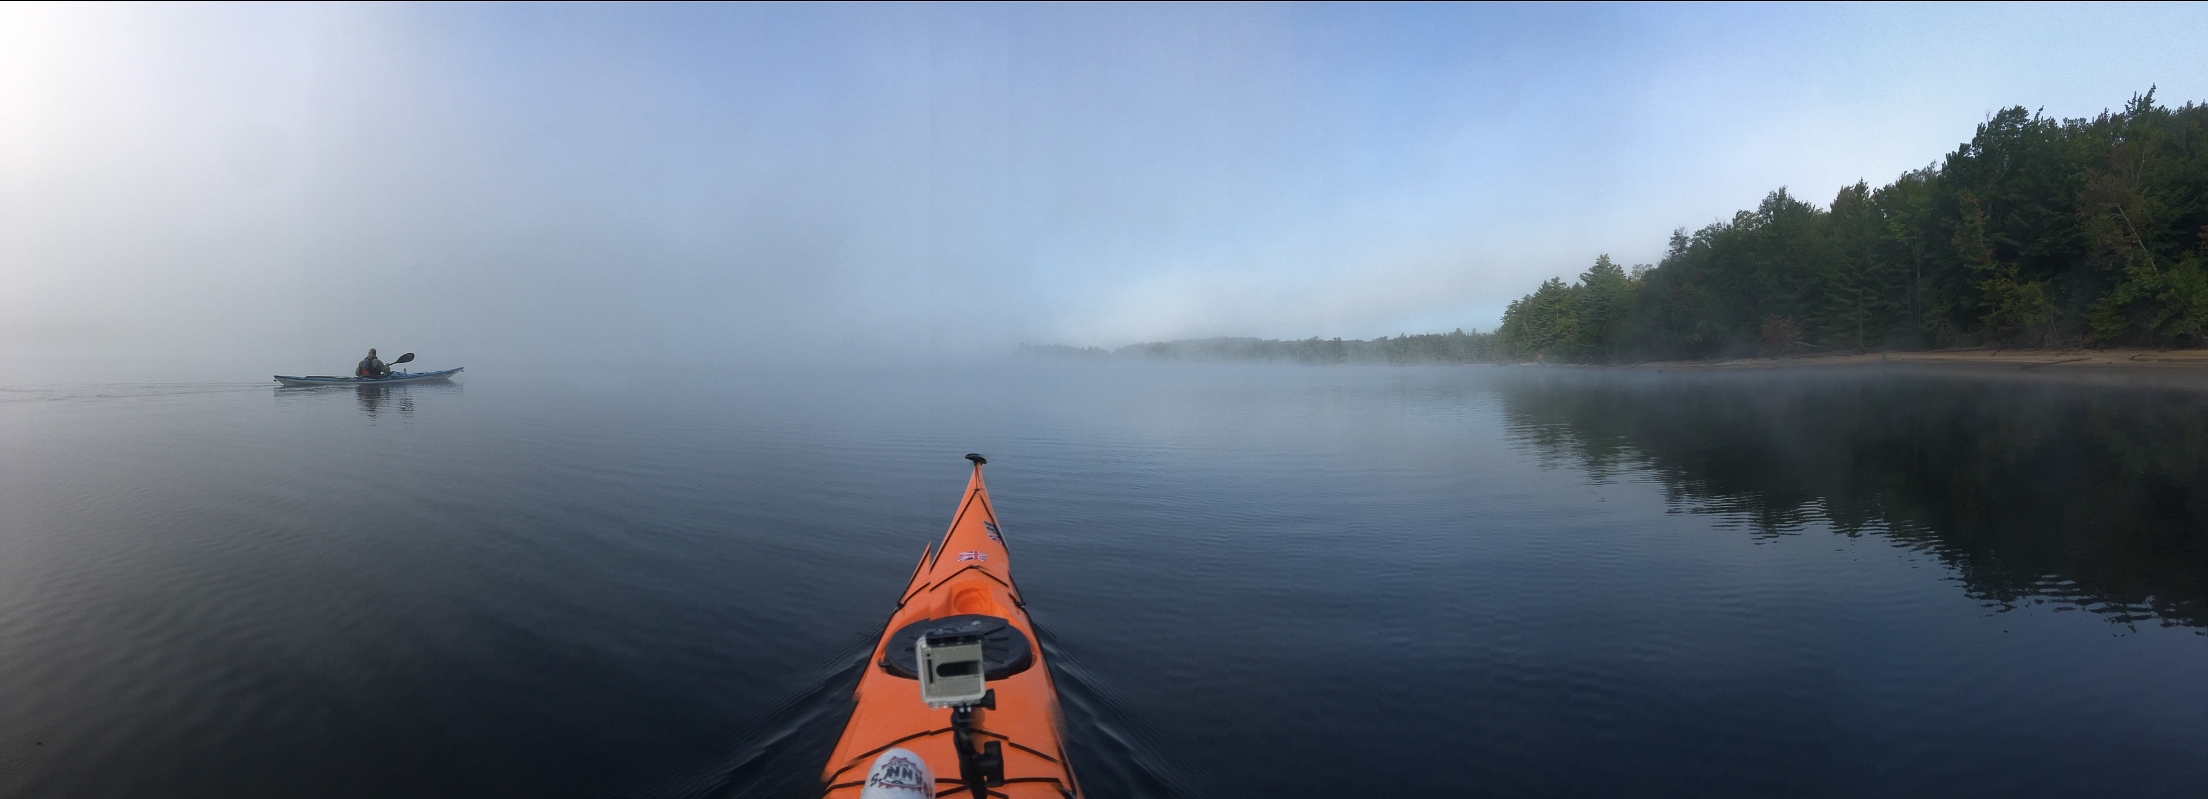 Pano from iPhone on the morning of Day 3. The fog is just staring to lift.